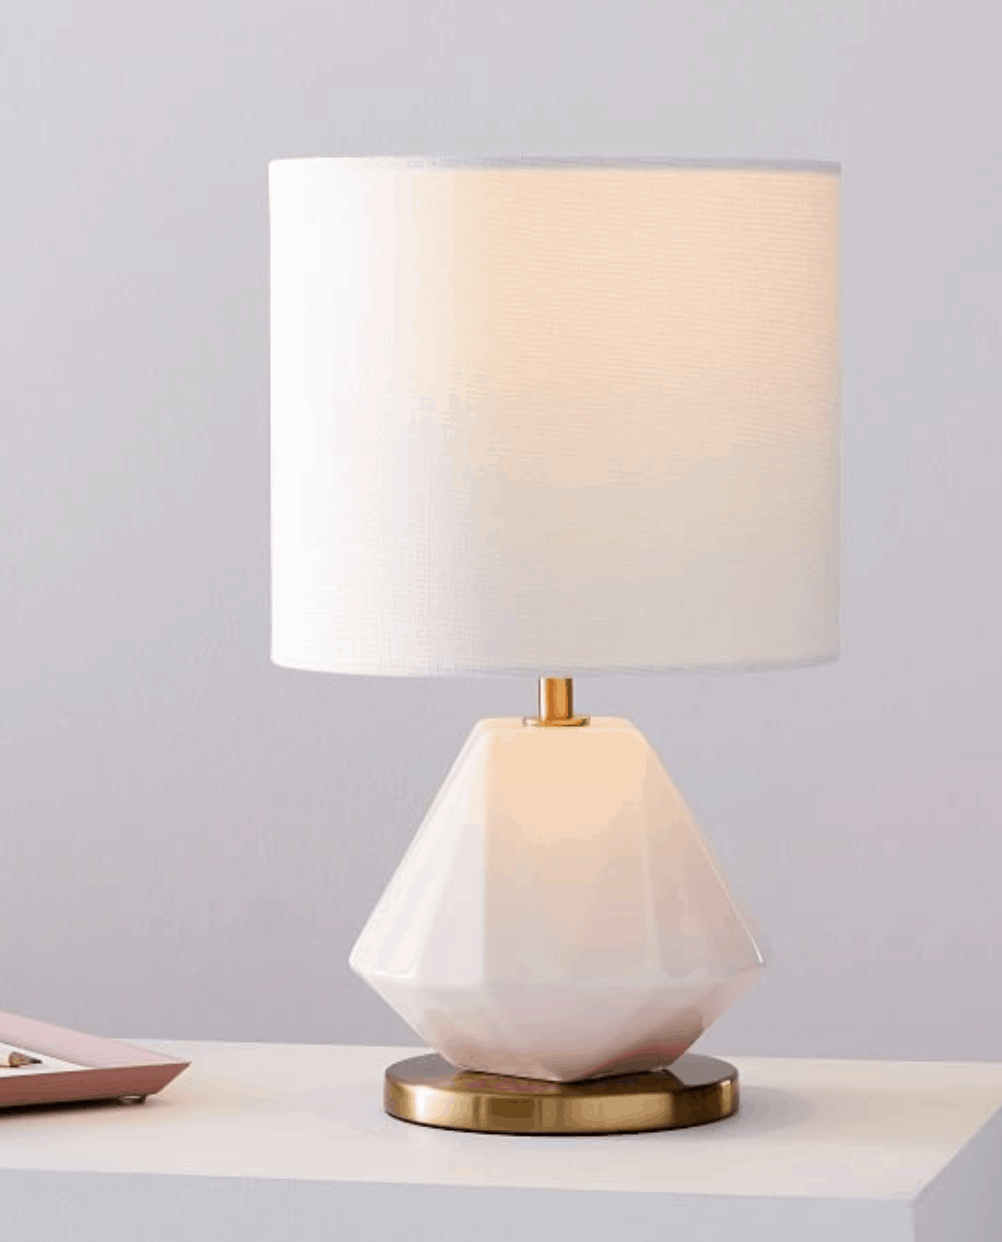 15 Gorgeous Table Lamps under $100 // Jeweled Faceted Porcelain Table Lamp